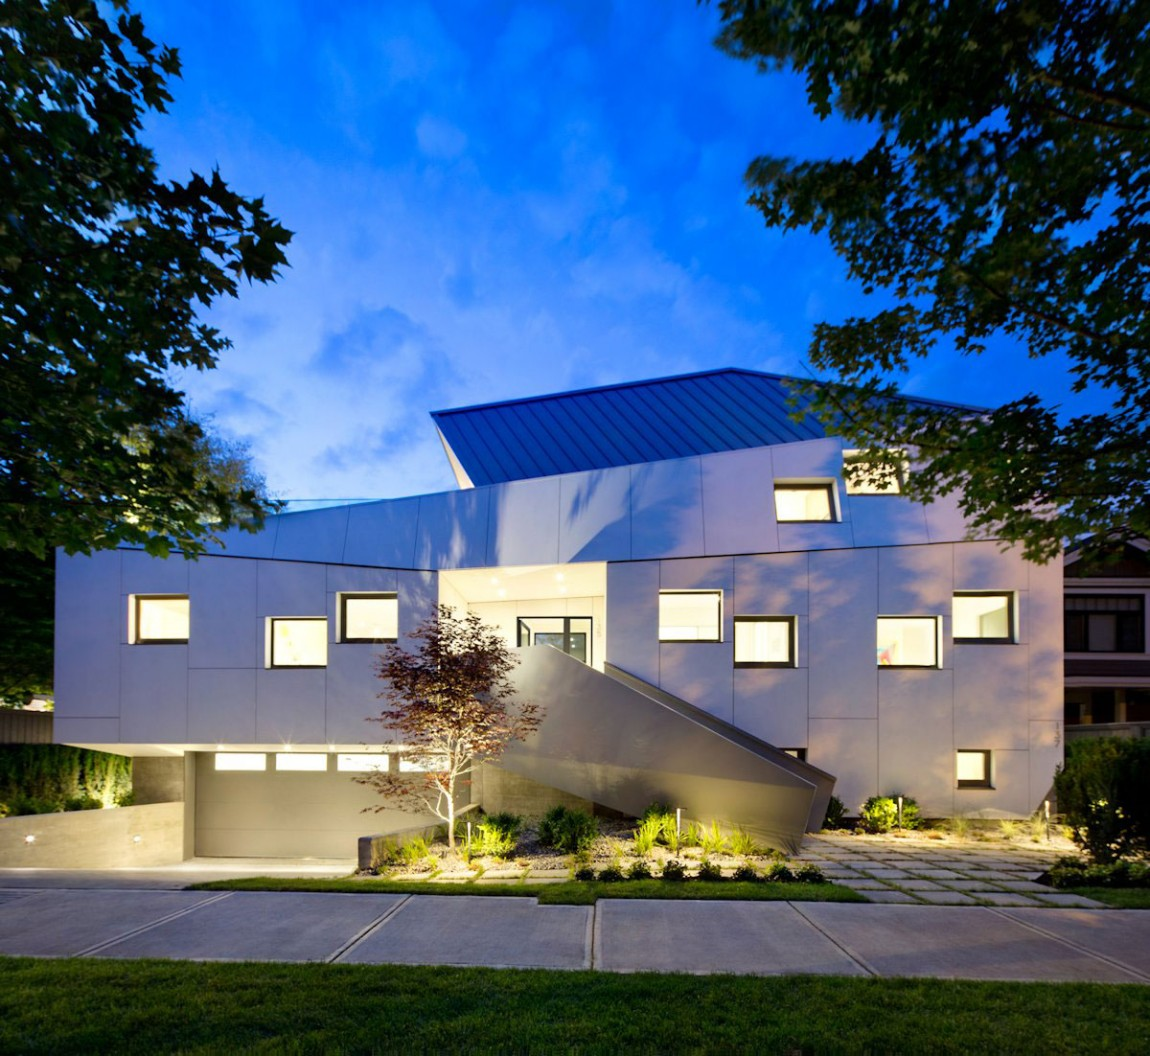 Energy Star Efficient Home Built To Stand Out In The Urban Vancouver Setting